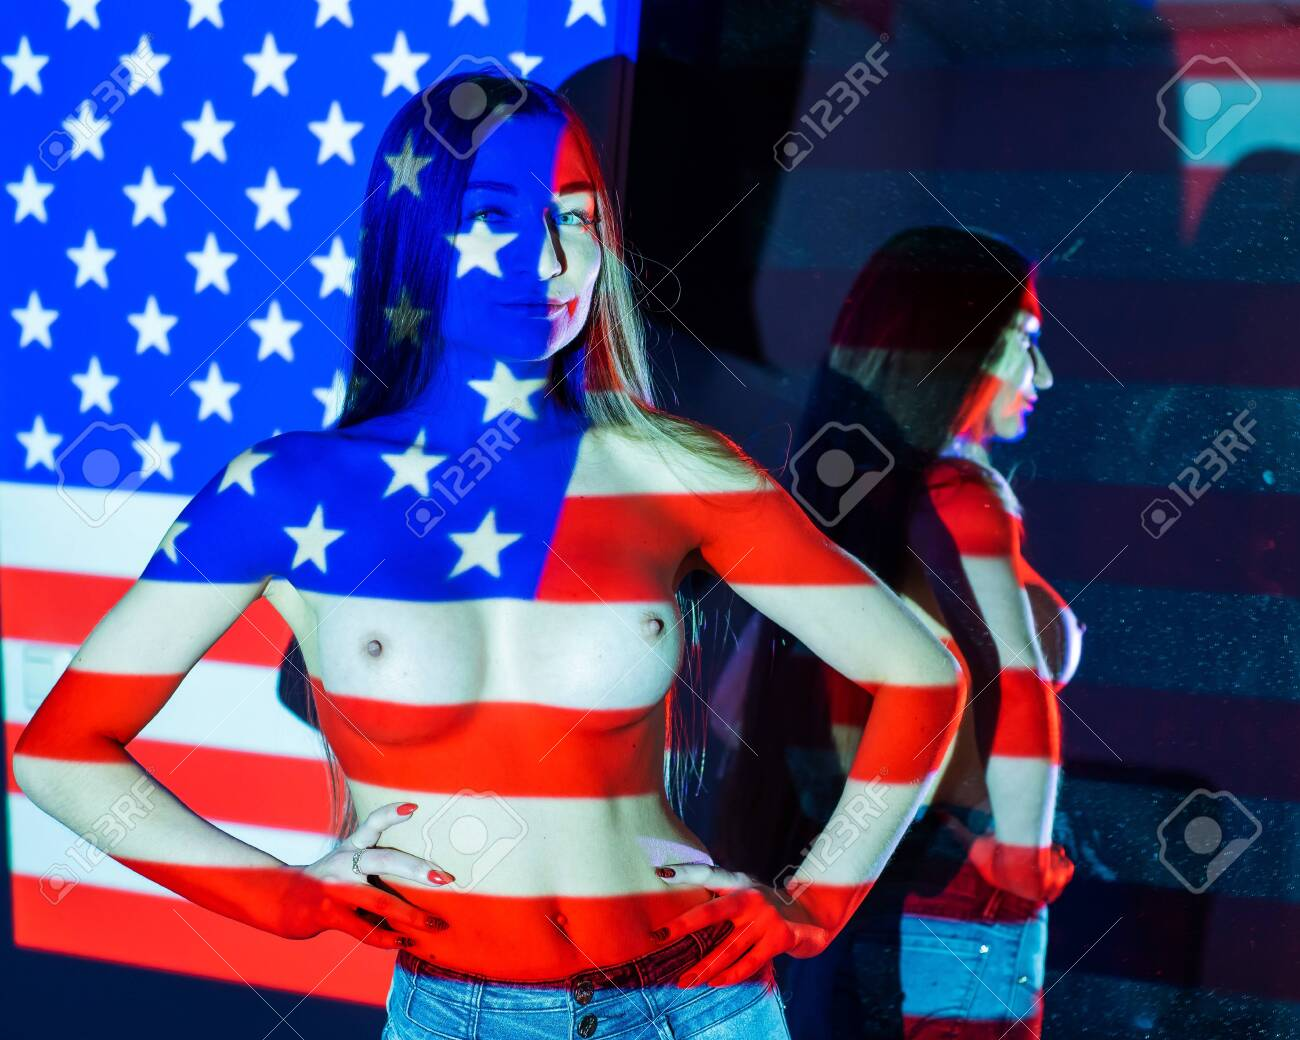 Drawing Of The American Flag On A Naked Female Body Body Art Stock Photo Picture And Royalty Free Image Image 131543747